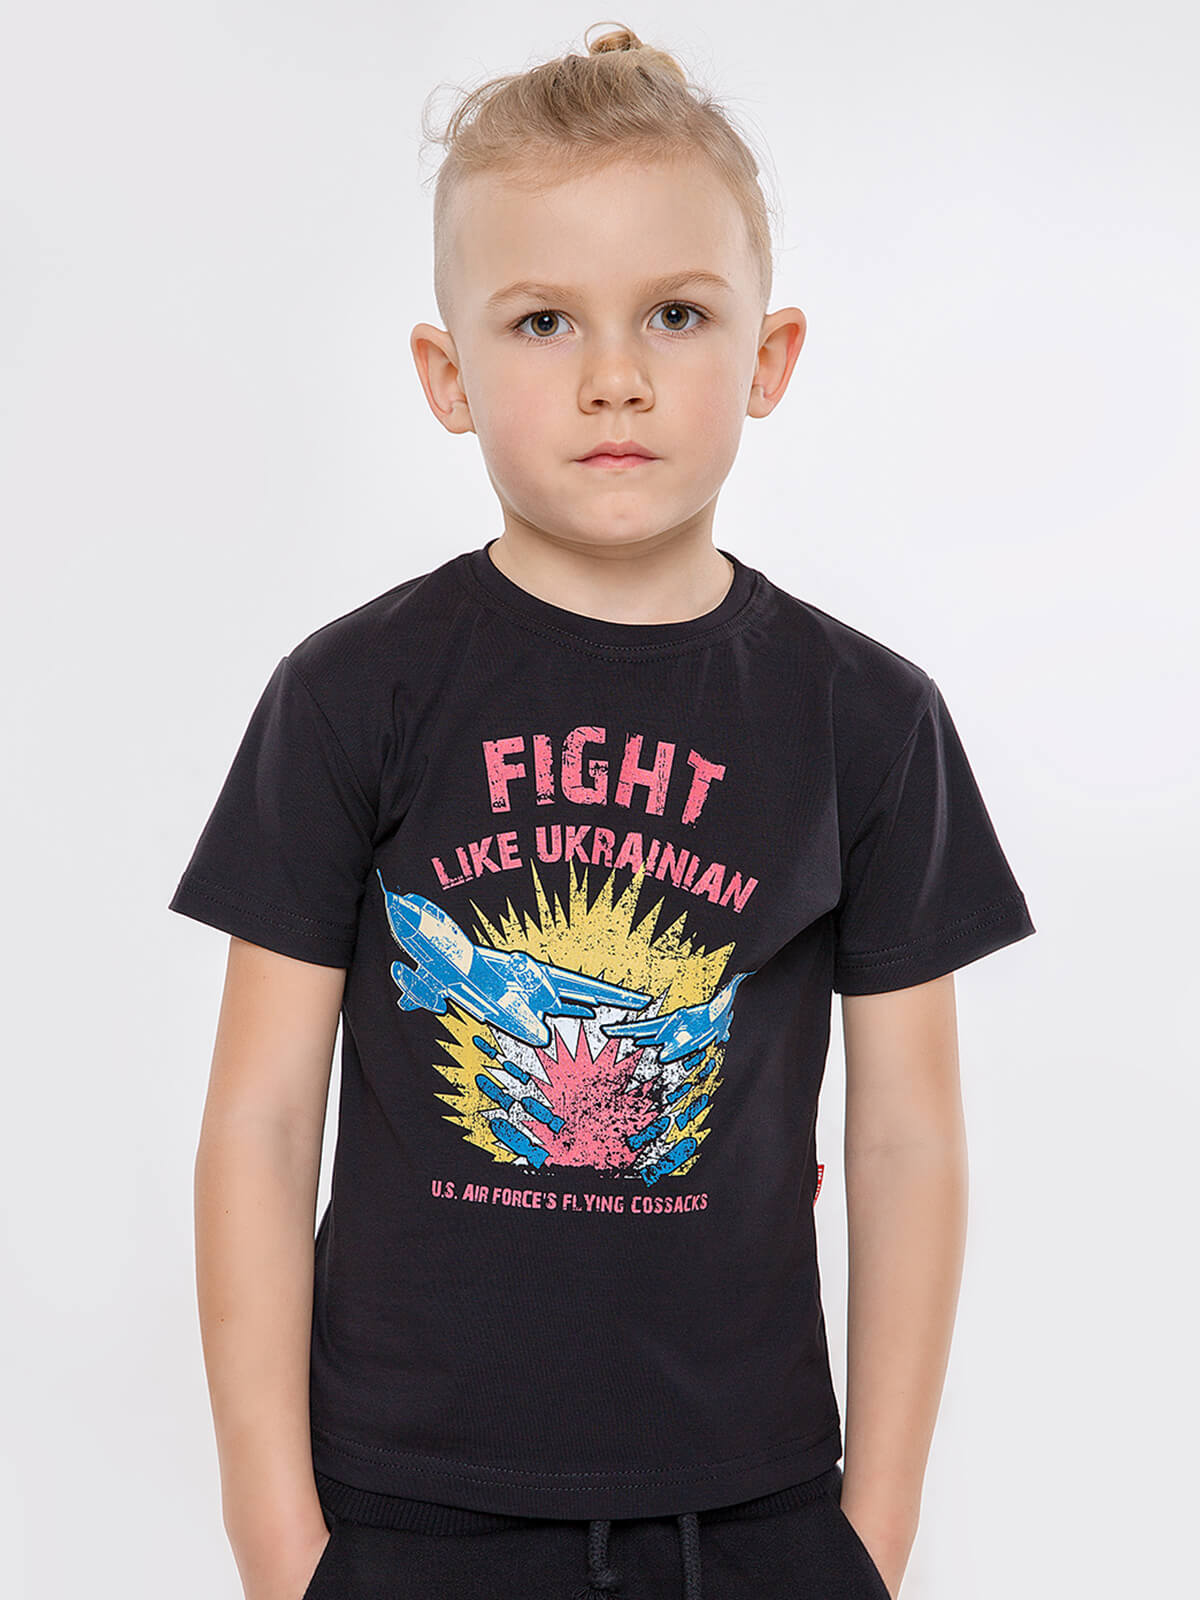 Kids T-Shirt Fight Like Ukrainian. Color black. Material: 95% cotton, 5% spandex.